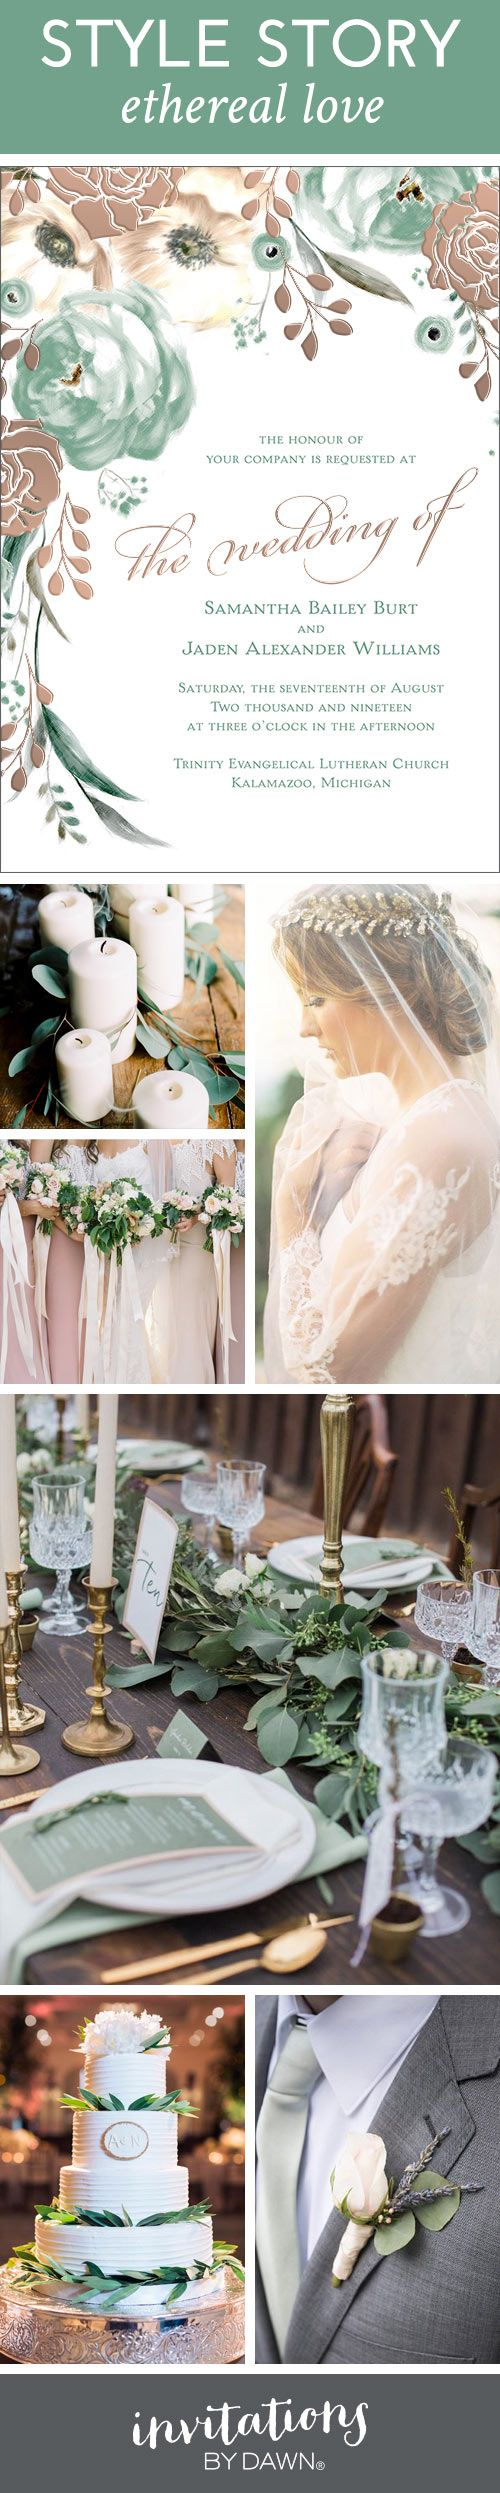 """How would you define ethereal? One dictionary defined it as """"extremely delicate and light in a way that seems too perfect for this world.' We started imagining what that might mean as a wedding style, and now we're sharing our vision with you"""